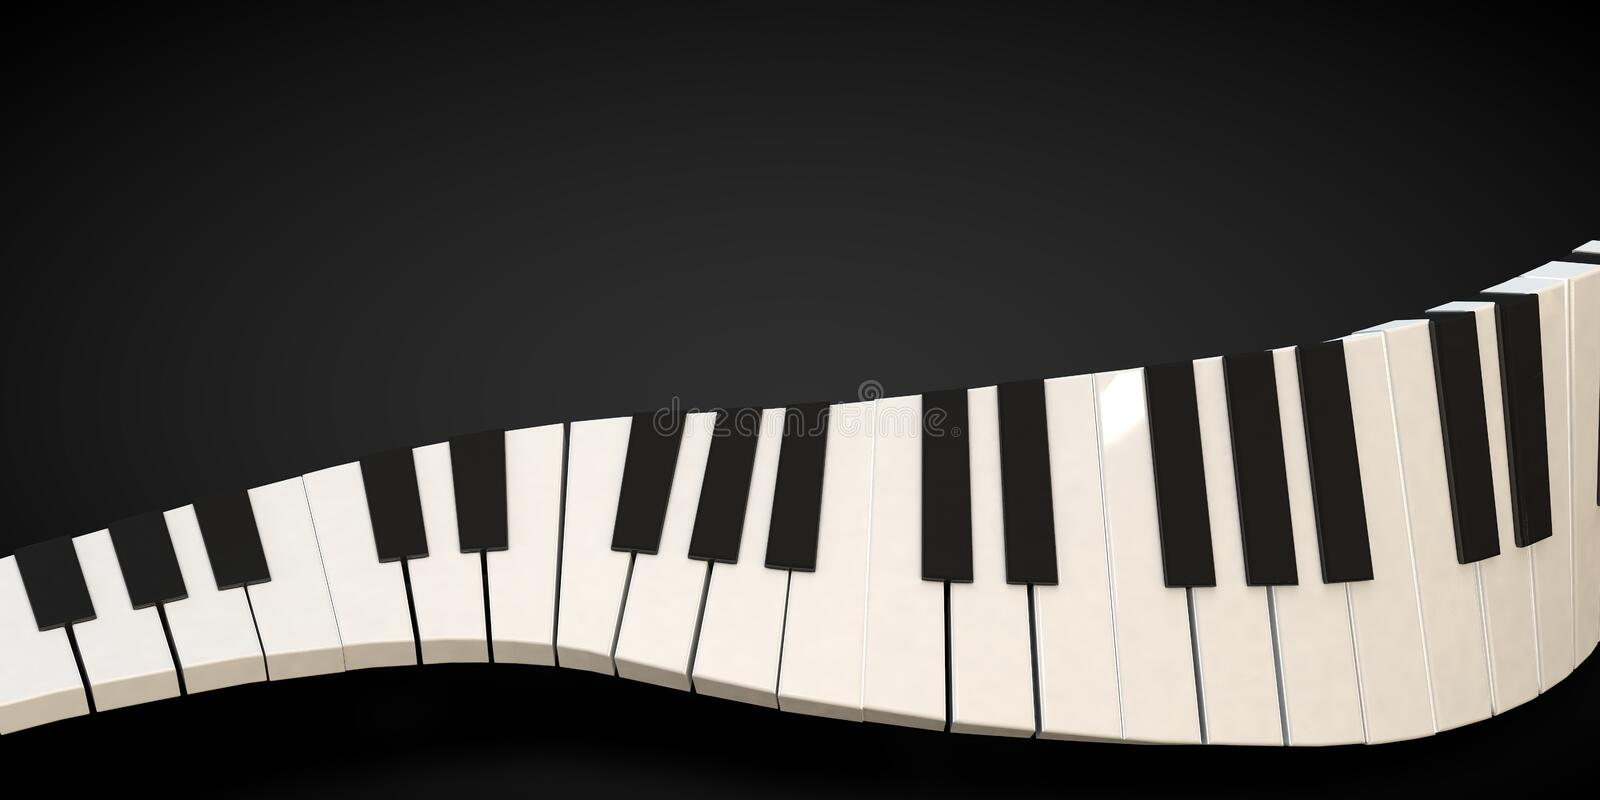 Download 3d Render Of A Piano Keyboard In A Fluid Wavelike Movement Stock Illustration - Illustration of design, classical: 89298186